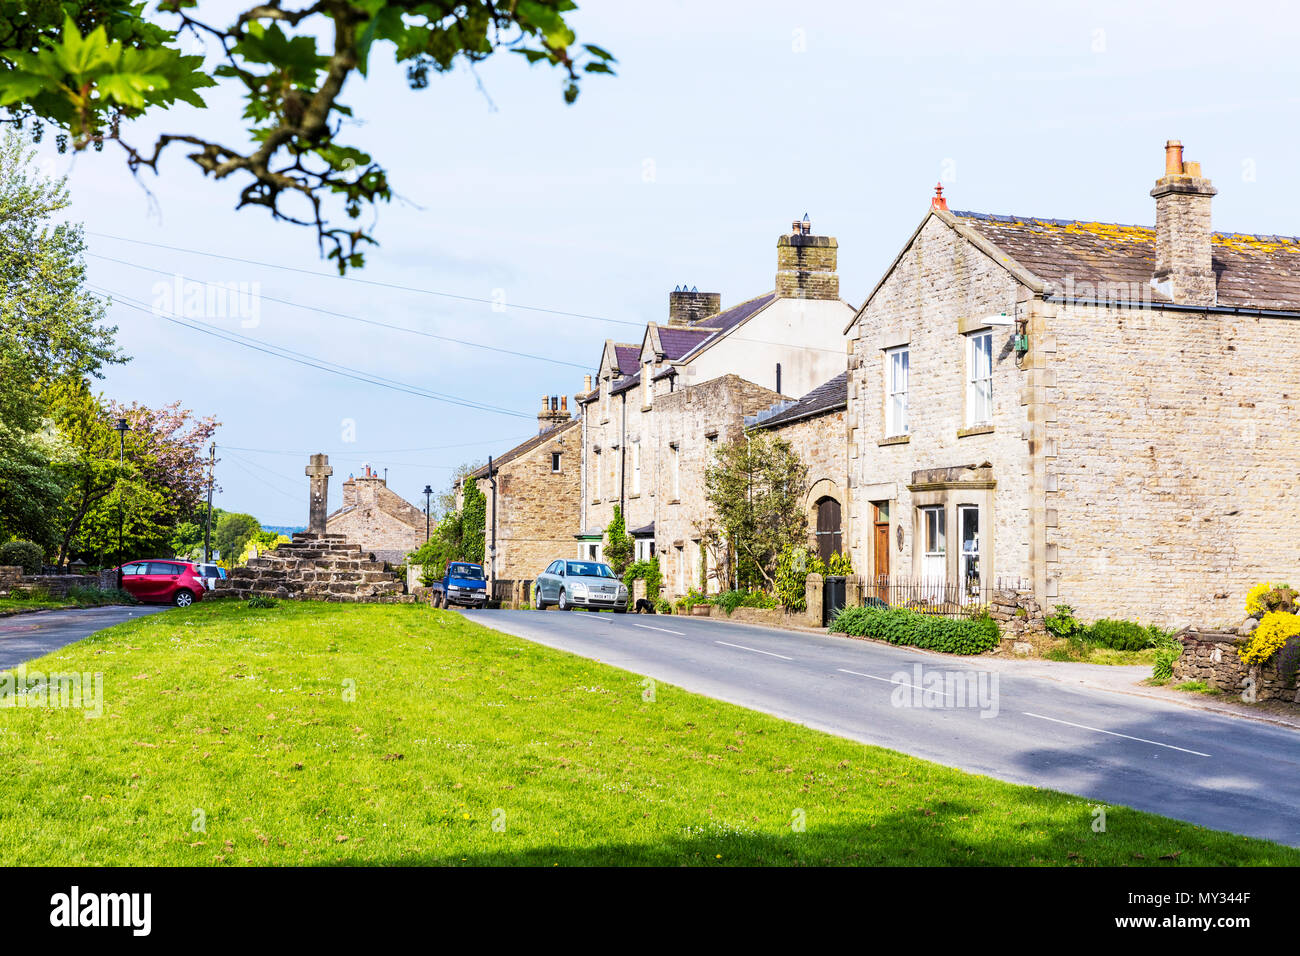 Carperby Village Yorkshire, Carperby Yorkshire, Carperby, North Yorkshire, Yorkshire village, Yorkshire villages, Carperby UK, Yorkshire roads, homes Stock Photo